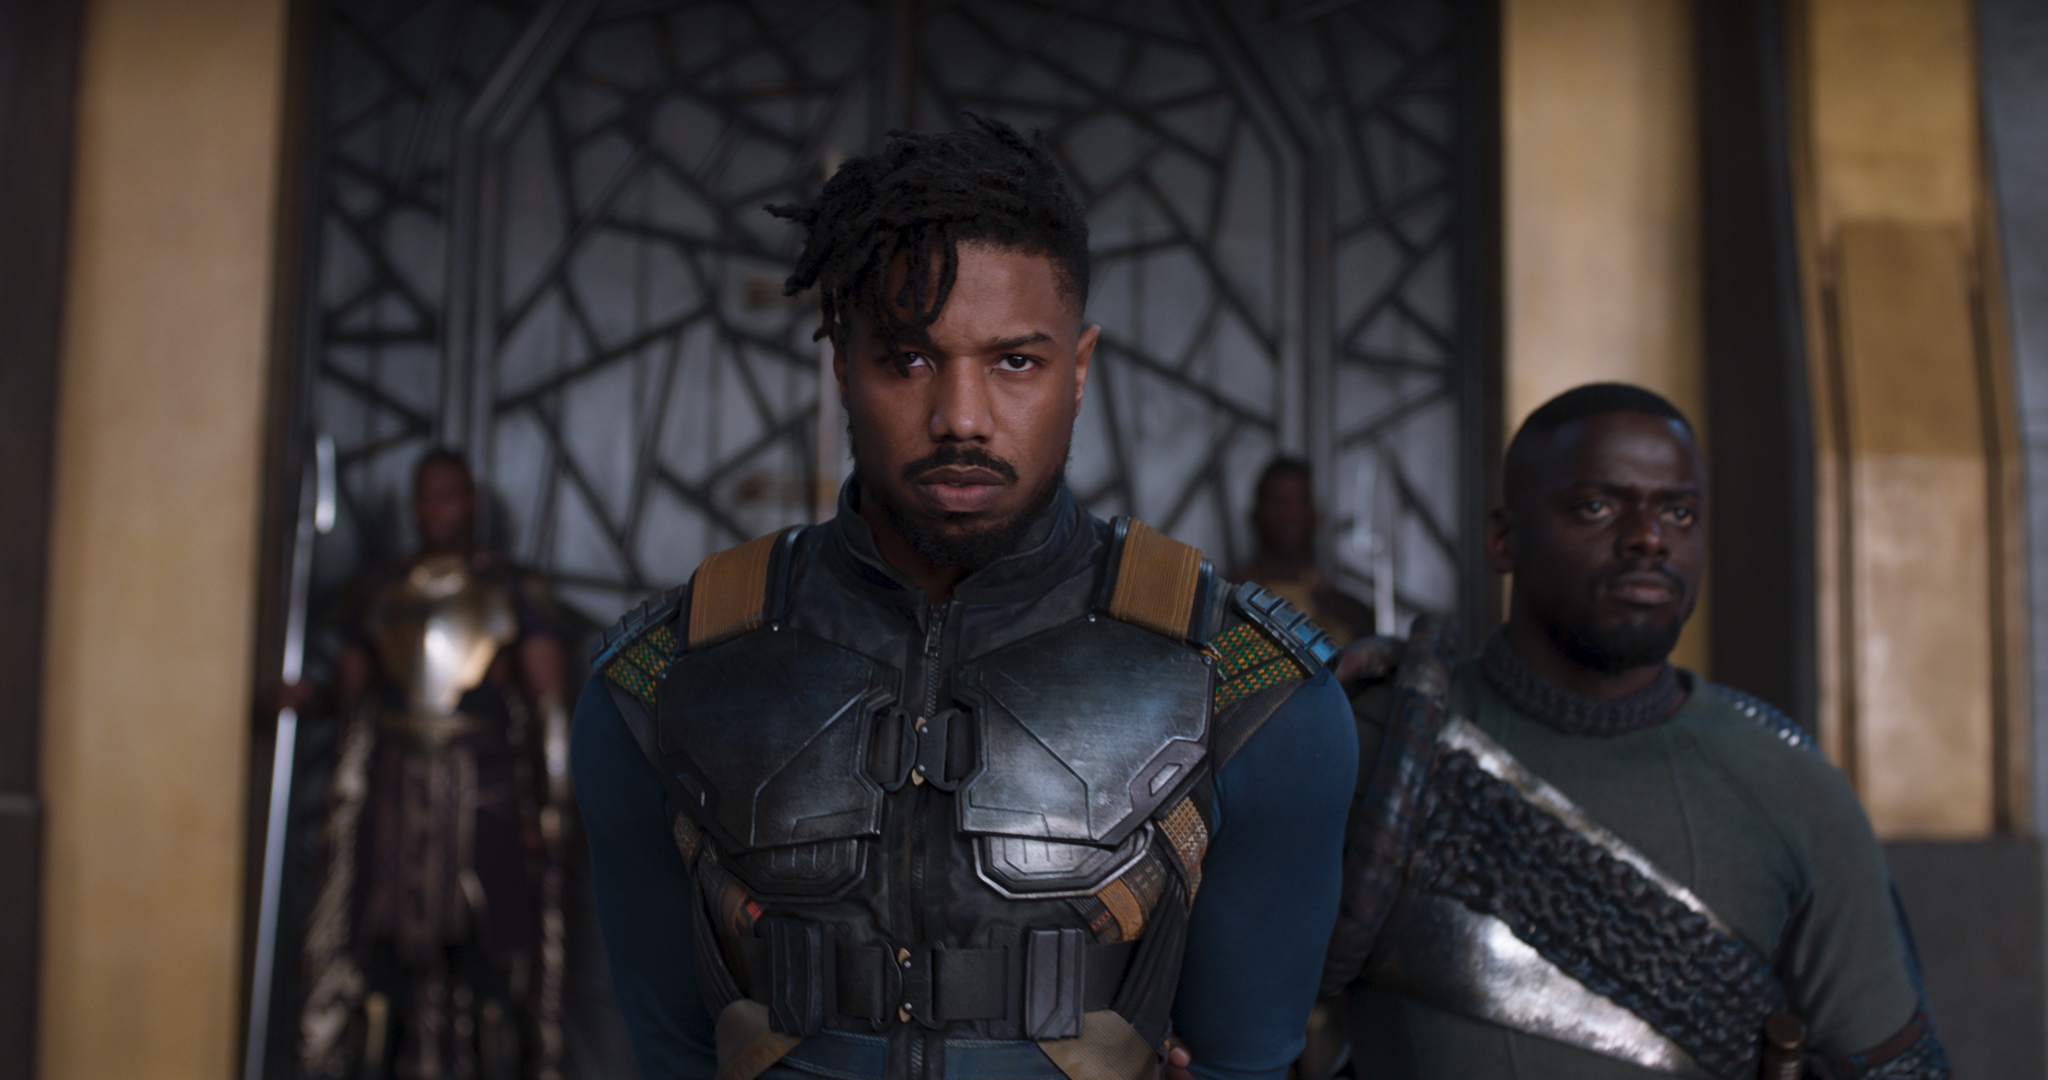 Could Erik Killmonger (Michael B. Jordan) be one of the MCUs best villains?